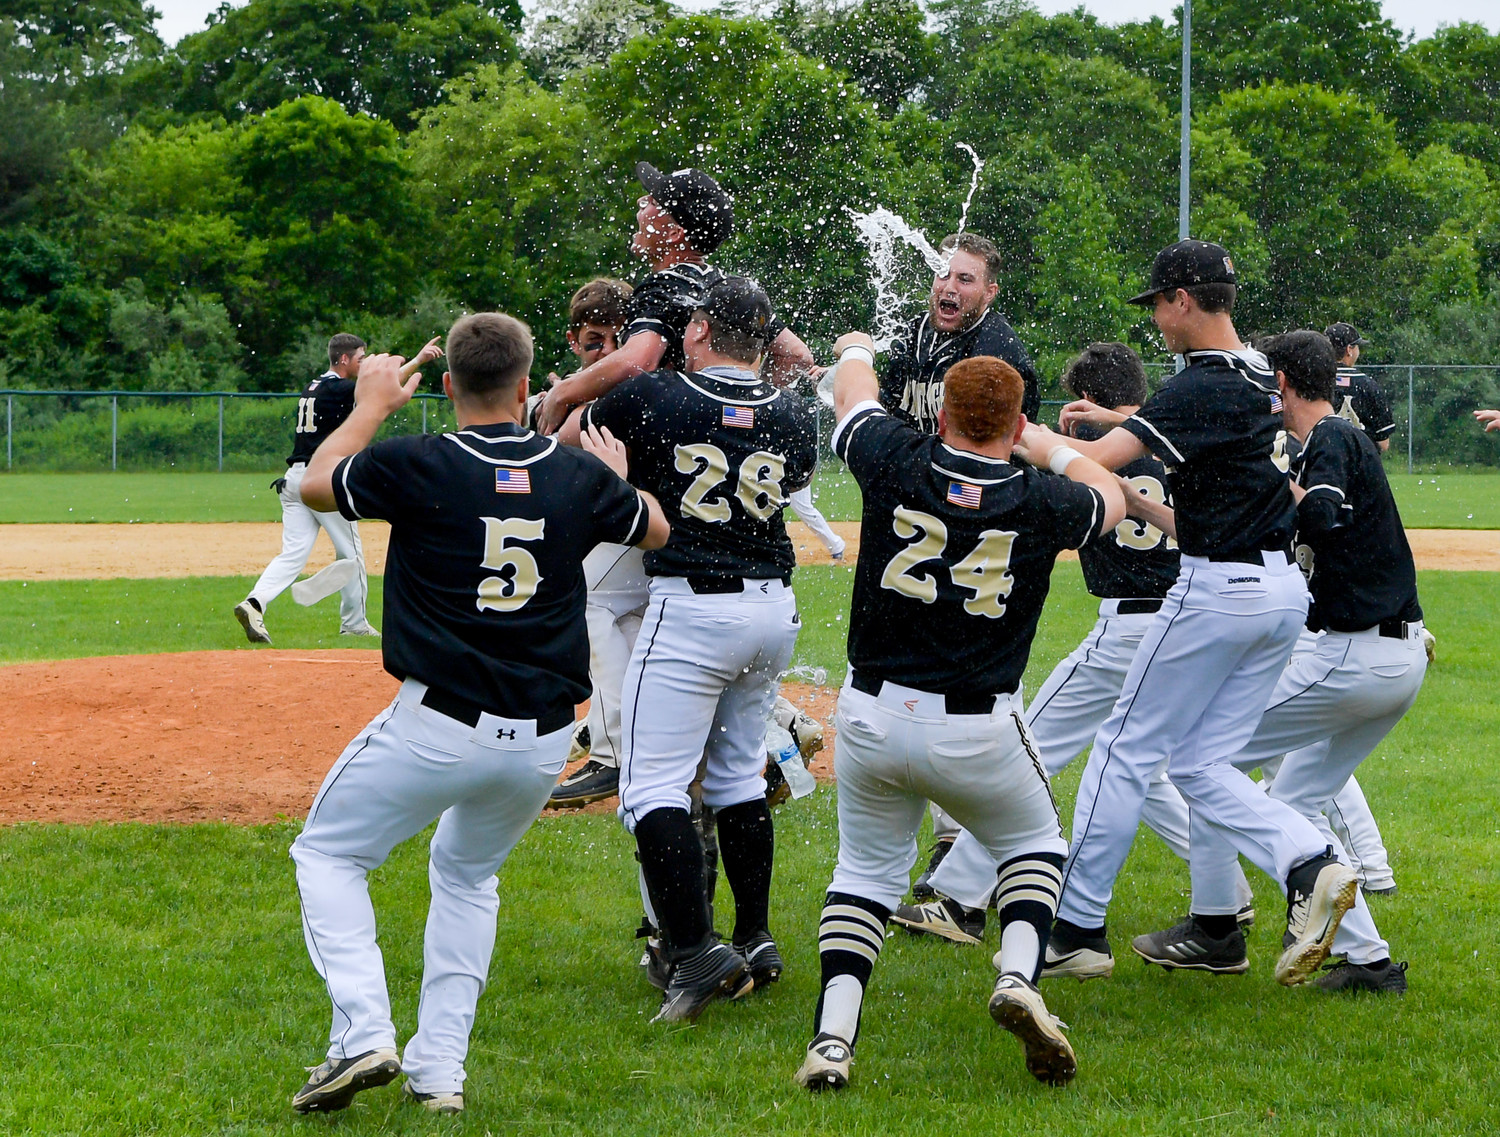 The Warriors celebrated their third straight county title on May 28, crushing Division with a nine-run seventh inning to guarantee a 14-3 championship victory.